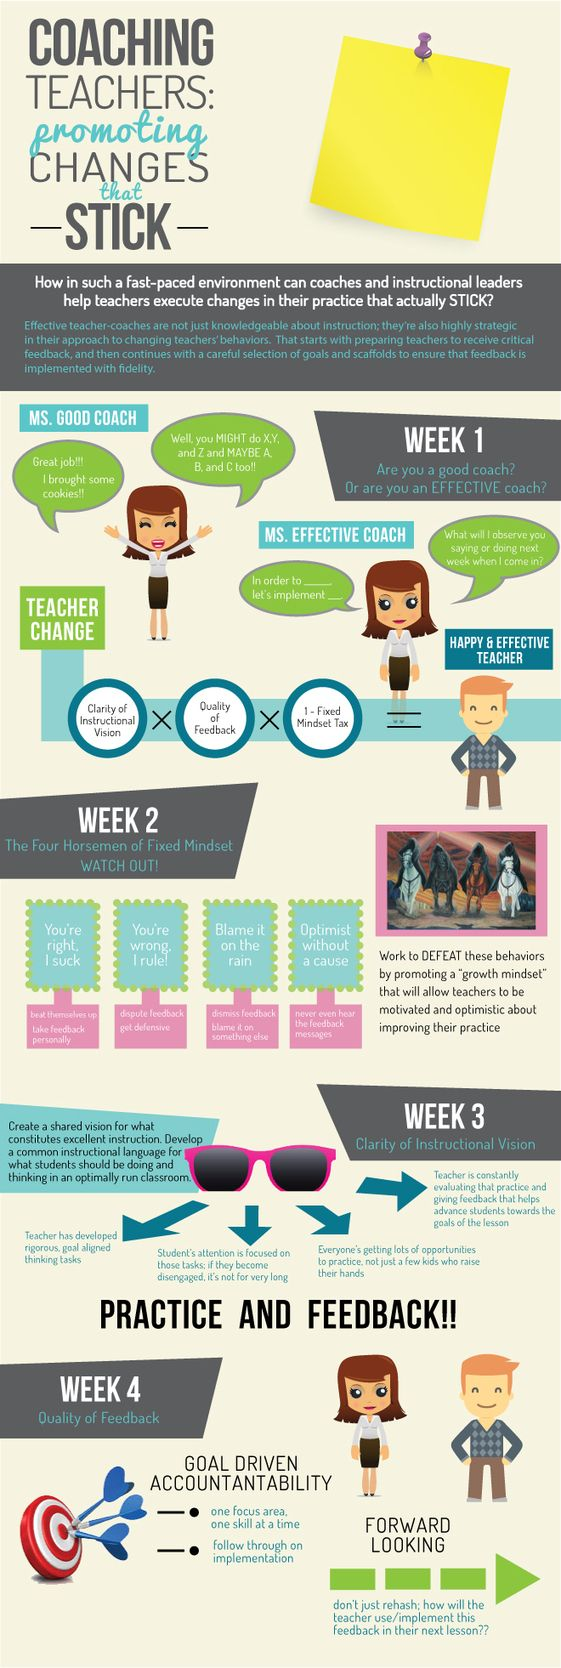 Coaching Teachers-Promoting Changes That Stick: What I Learned | Ms. Houser